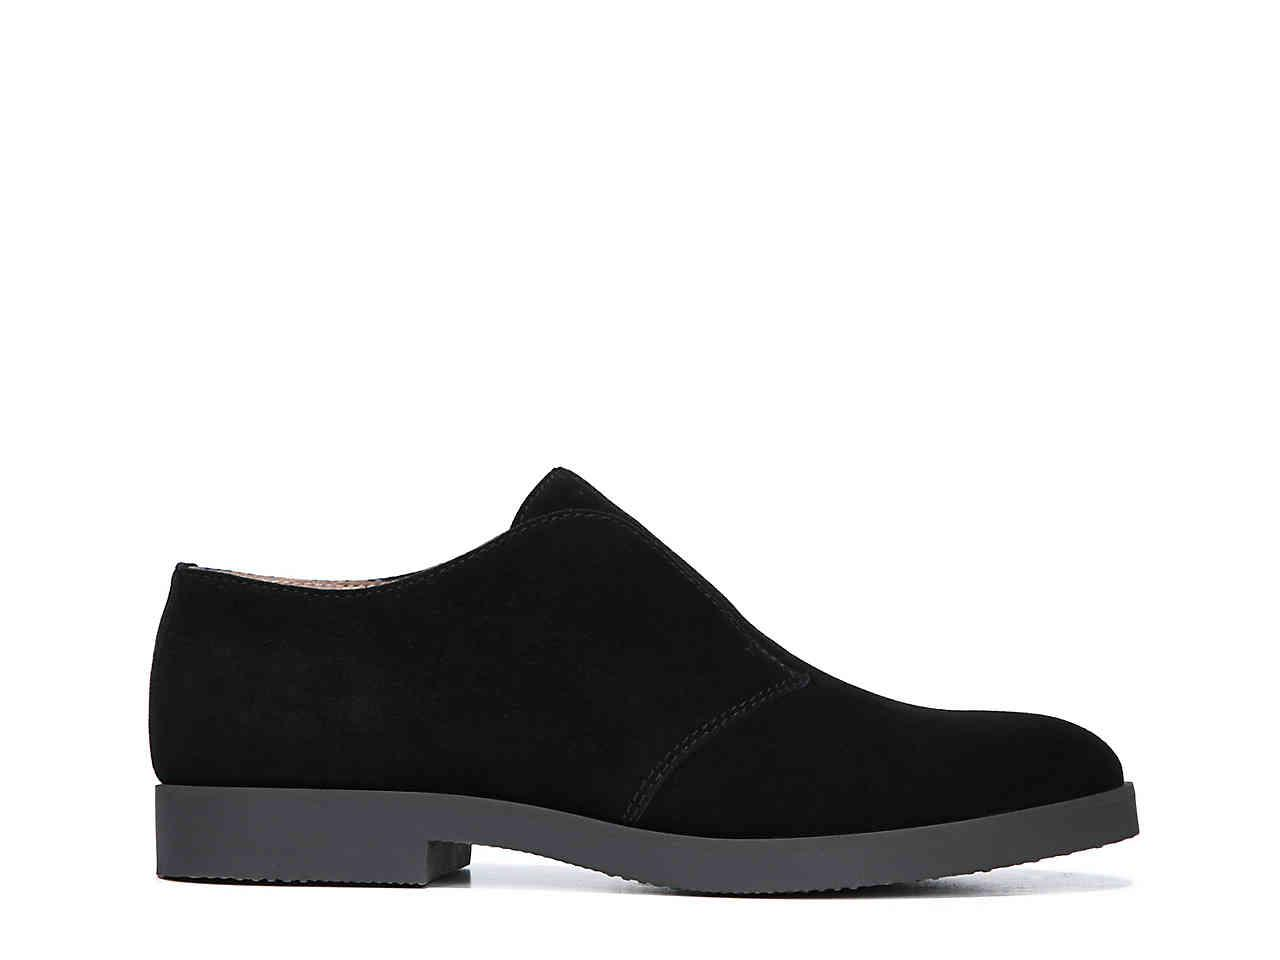 Franco Sarto Suede Lucille Slip-on in